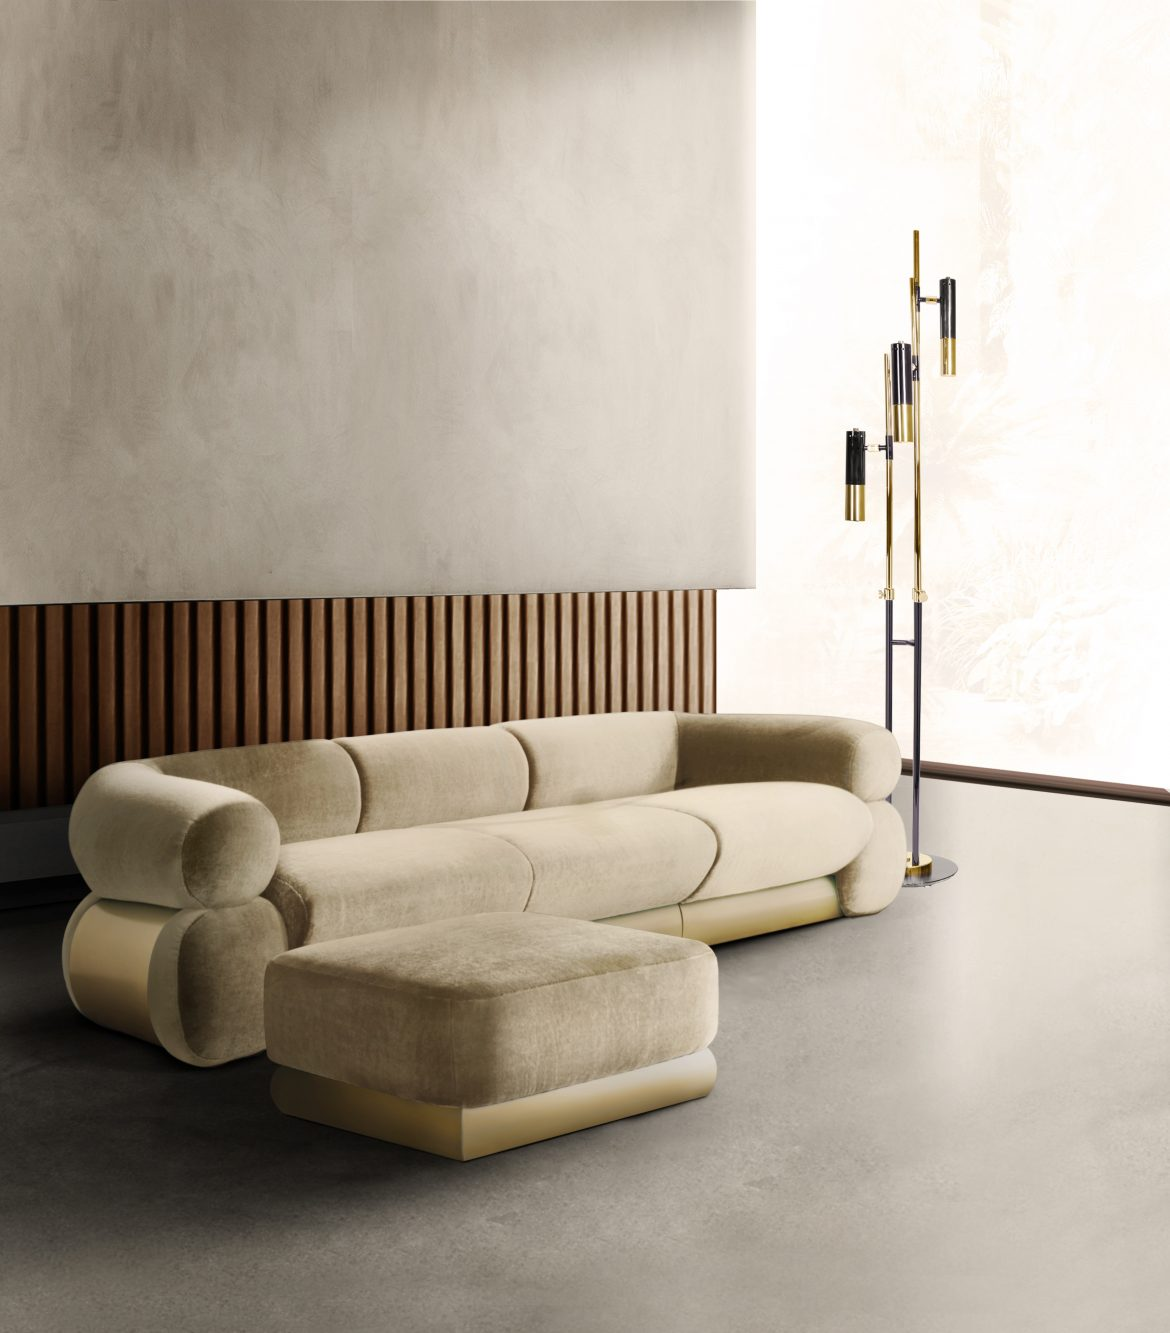 Fall In Love With Studiopepe's New Collection For Essential Home studiopepe Fall In Love With Studiopepe's New Collection For Essential Home APROVADO01 mid-century furniture collection Studiopepe Releases New Mid-Century Furniture Collection APROVADO01